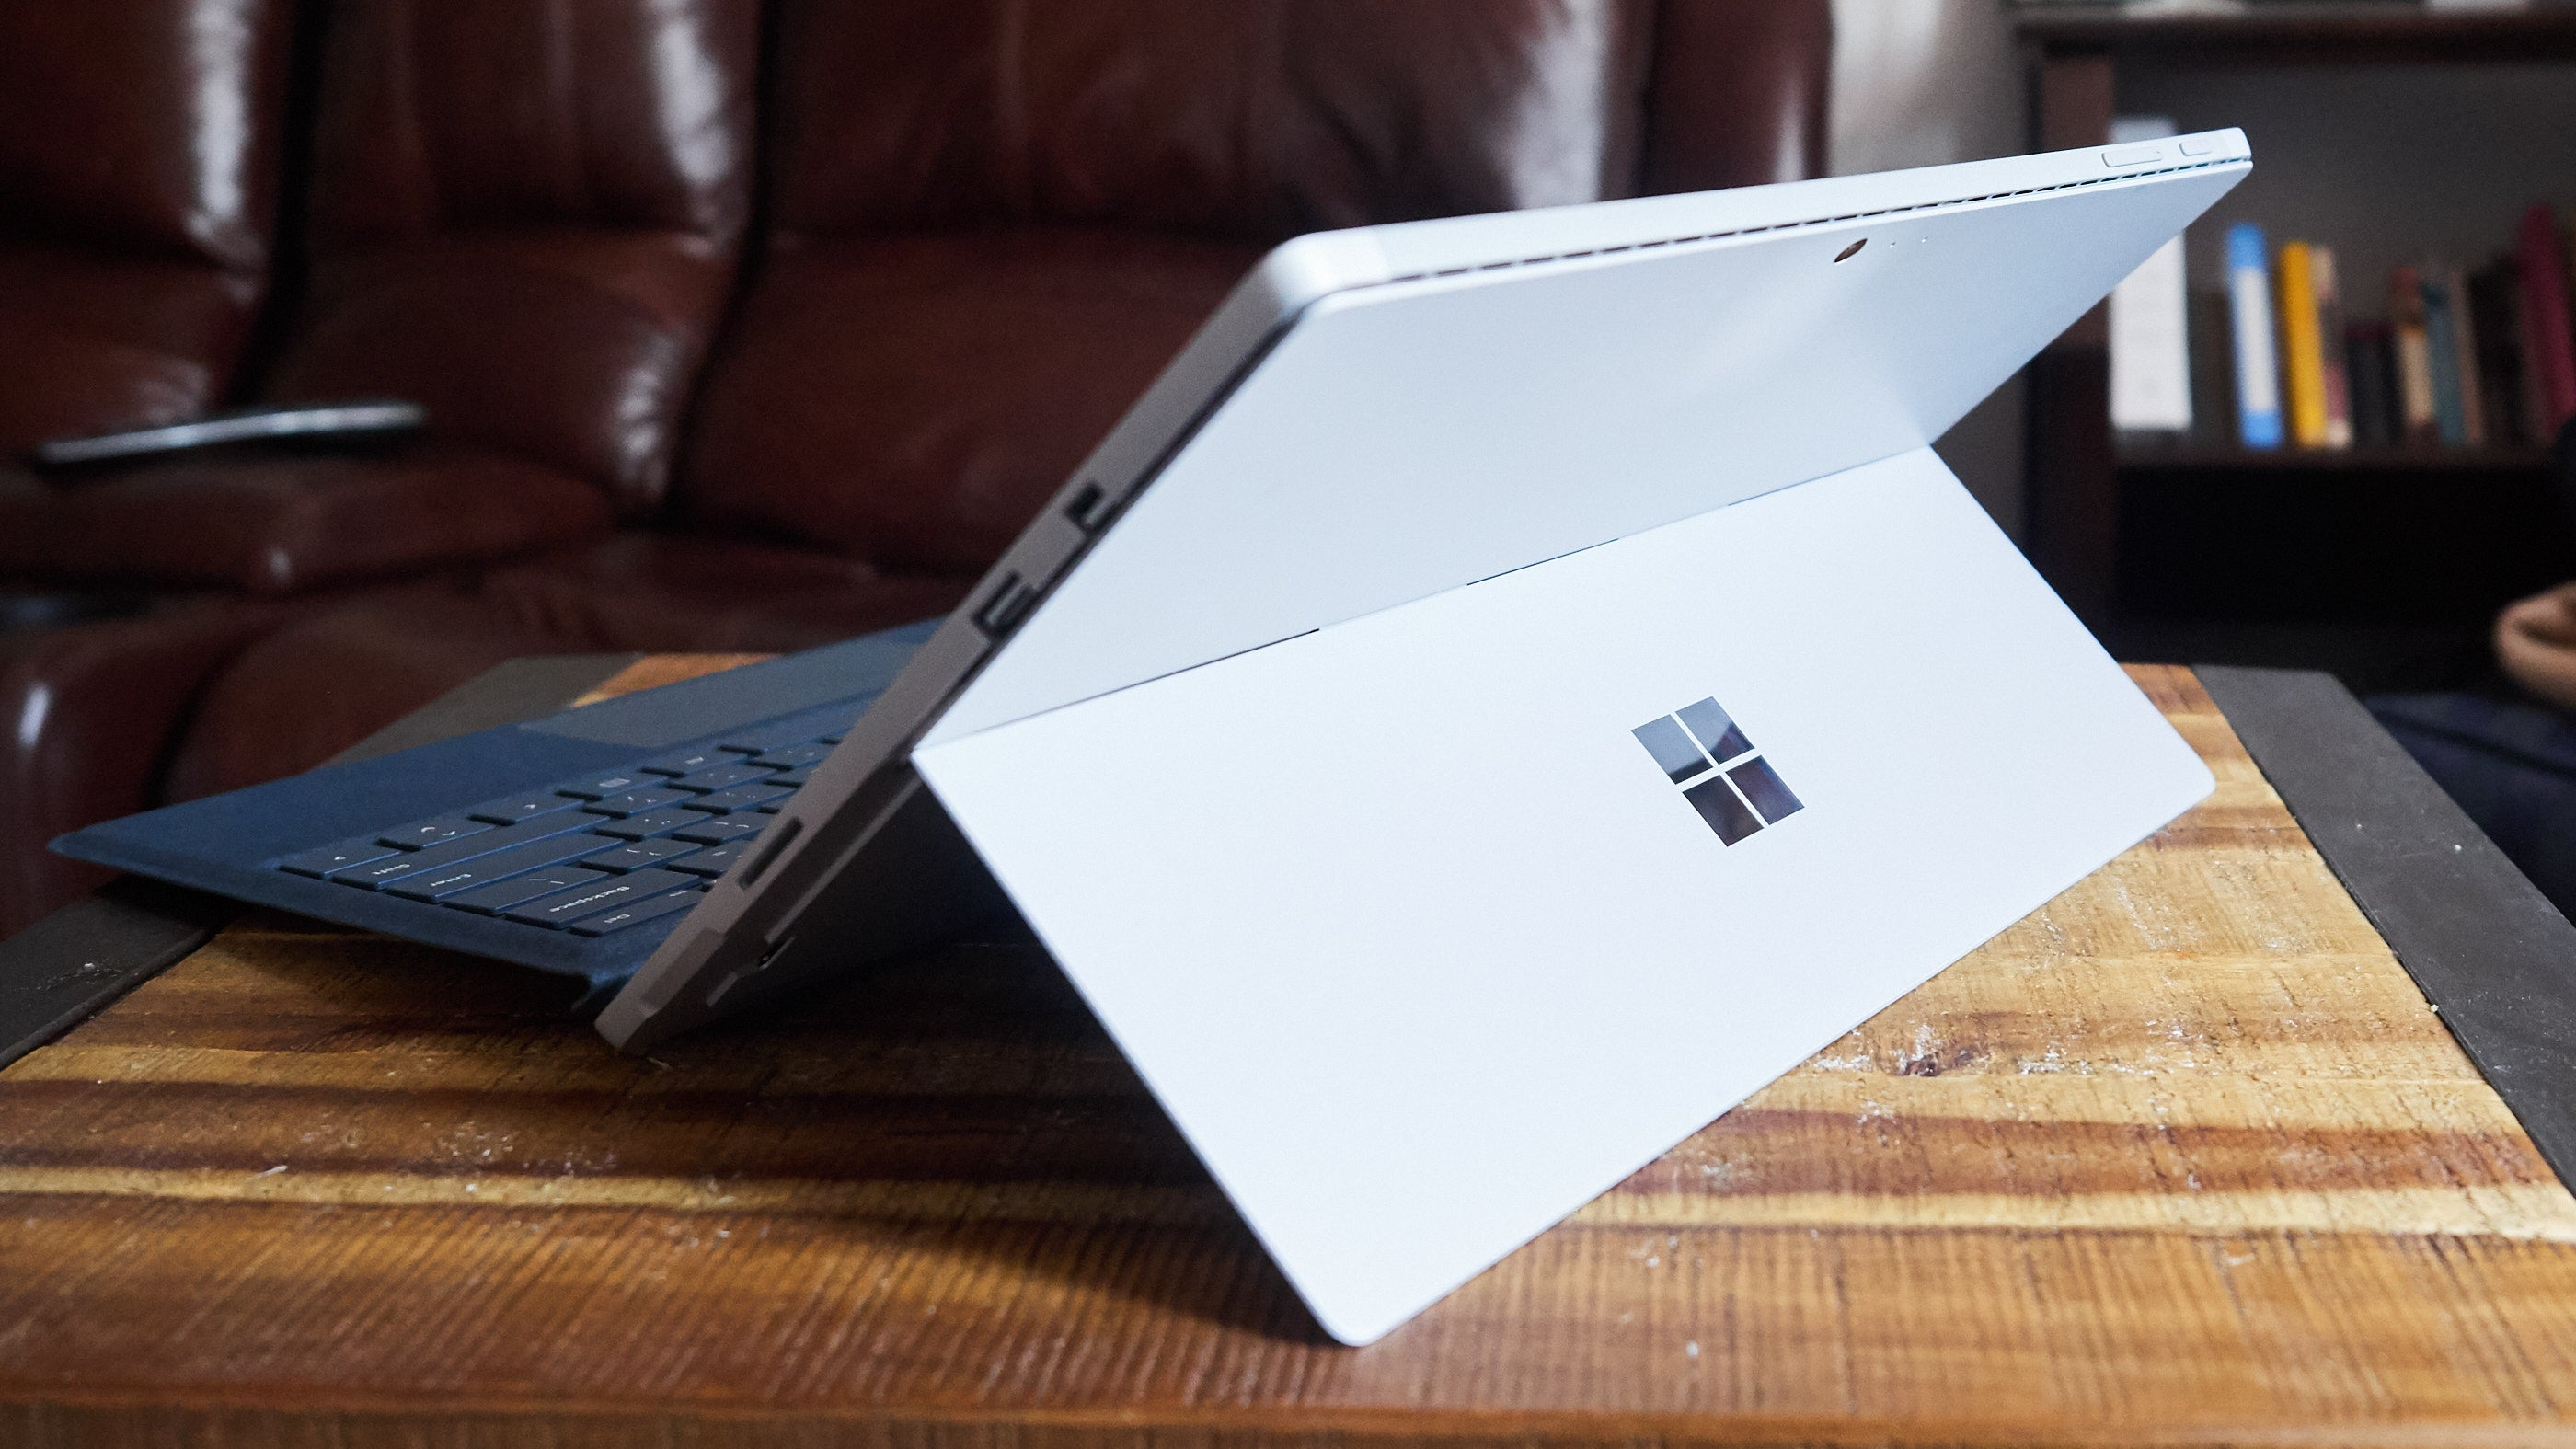 The New Surface Pro Is The Best Ever, But It's Not A Laptop